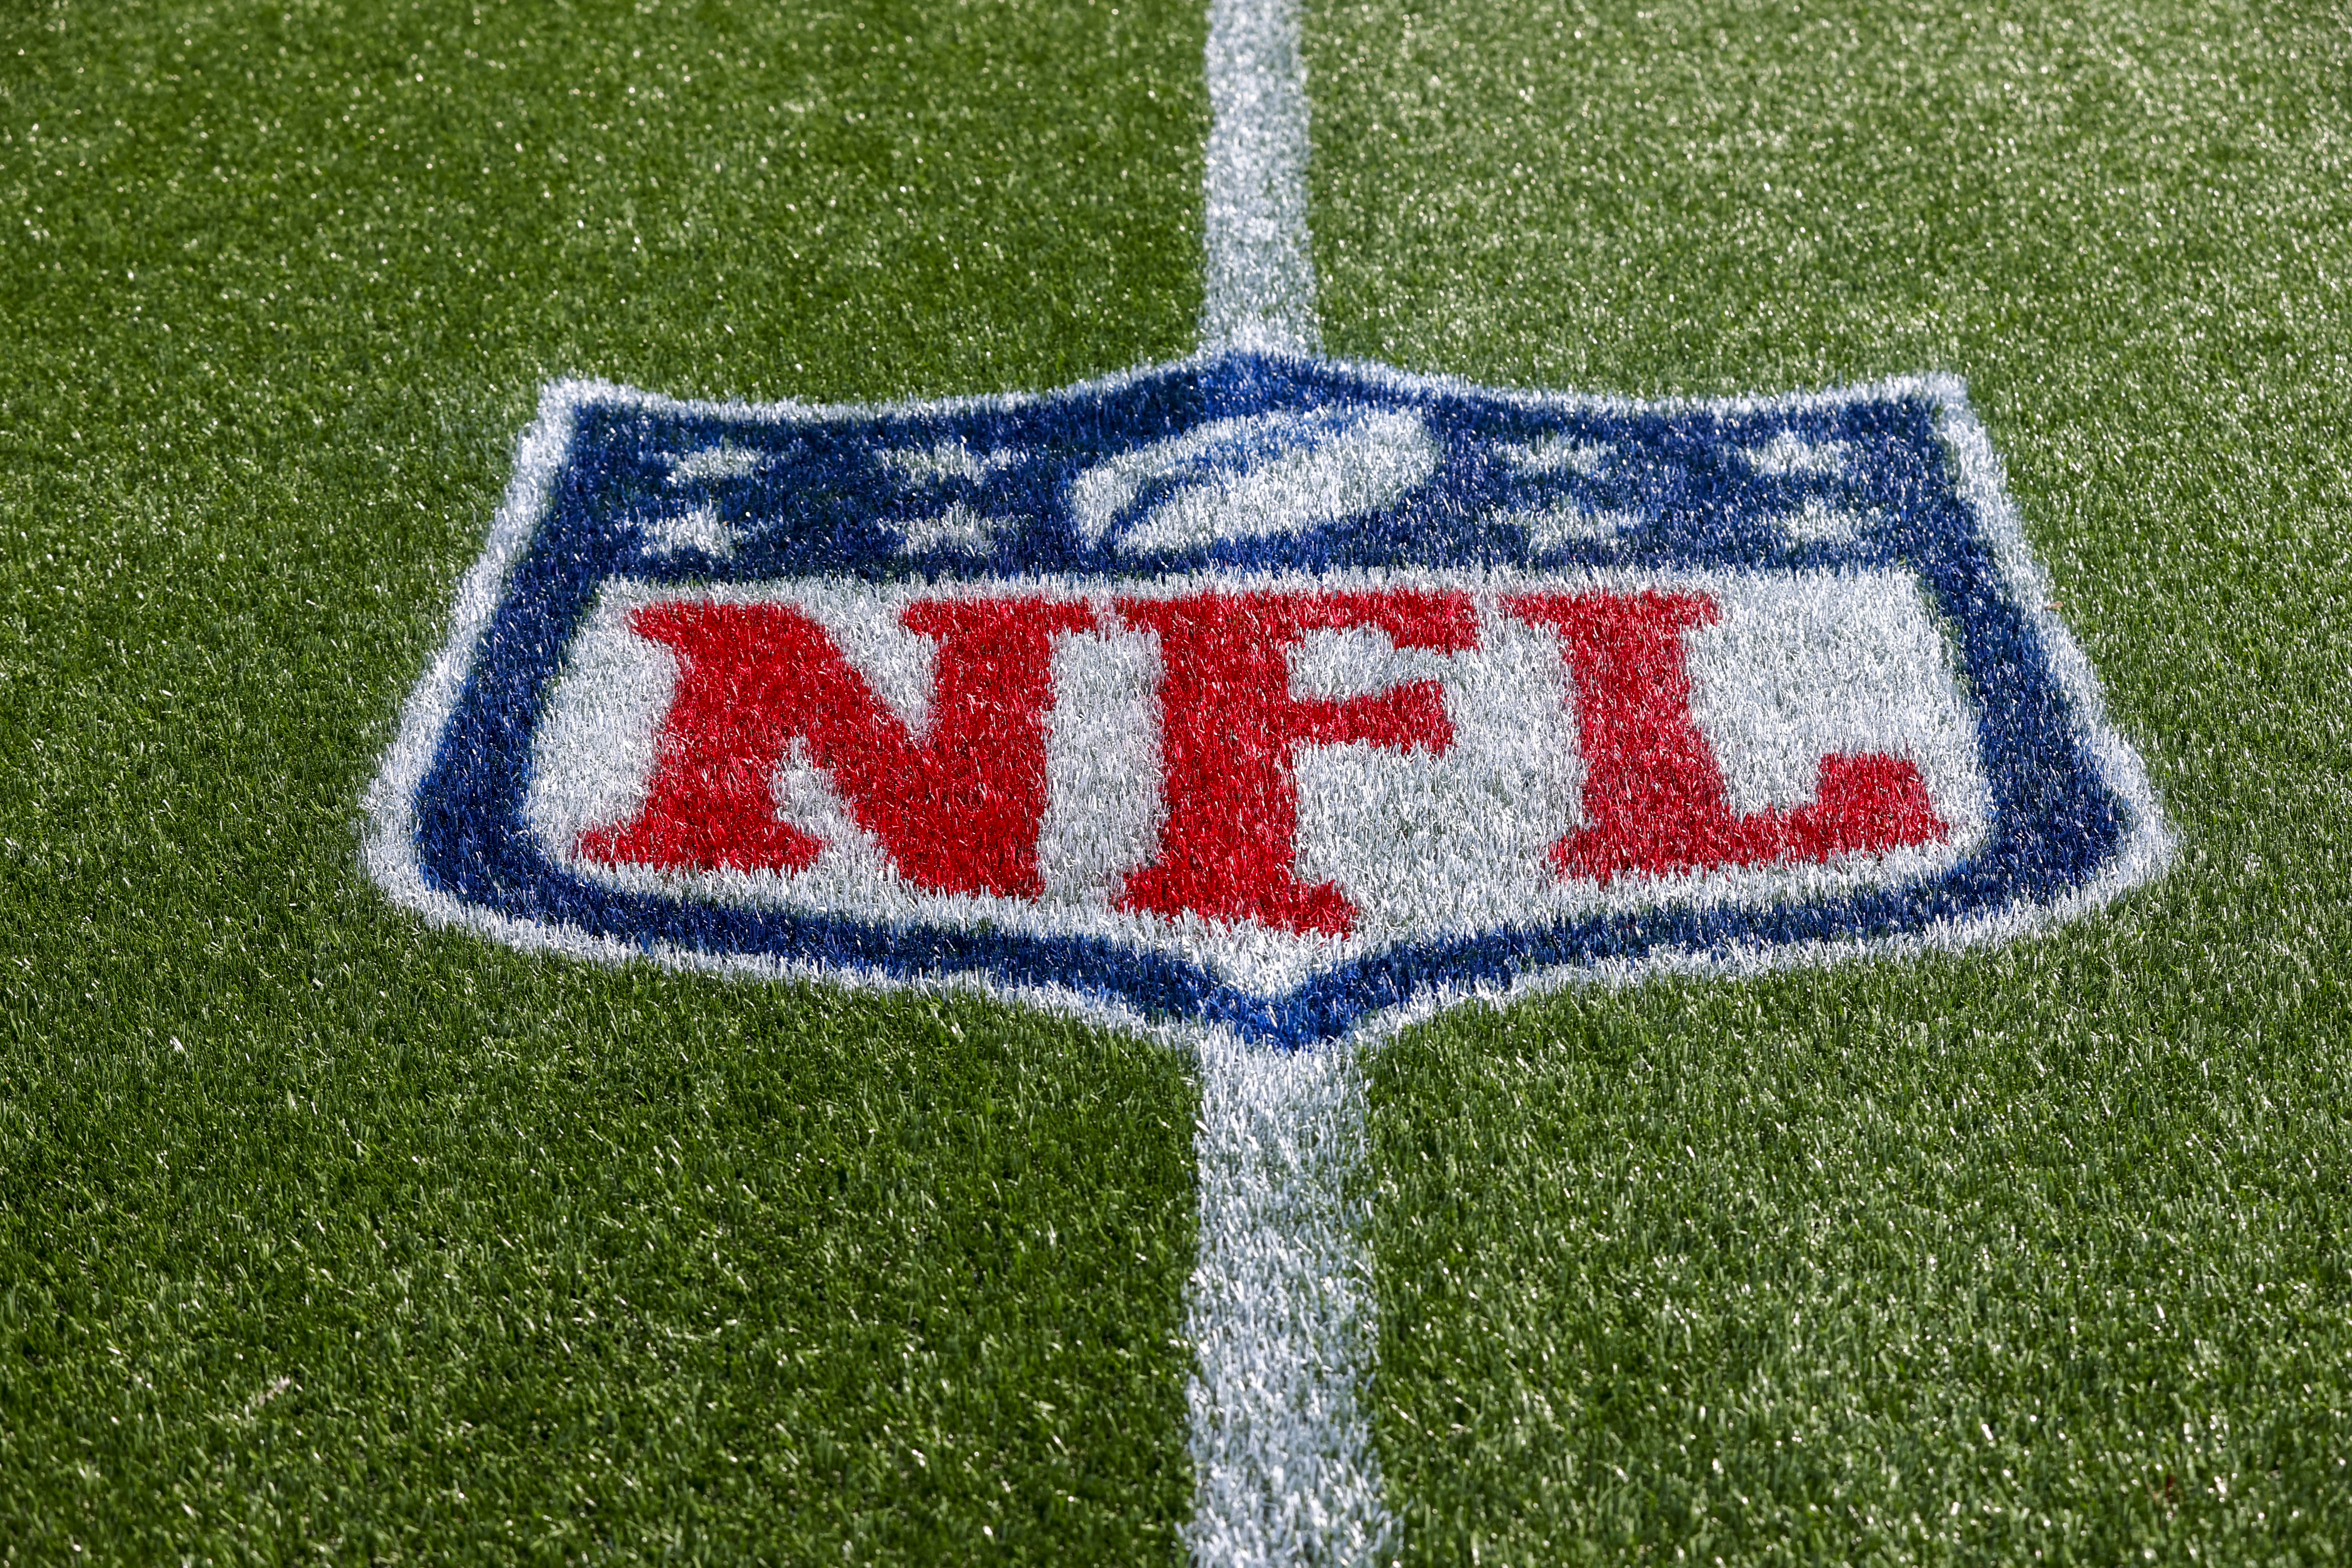 Report: NFL Likely to Schedule 1 Super Wild Card Weekend Game on Monday